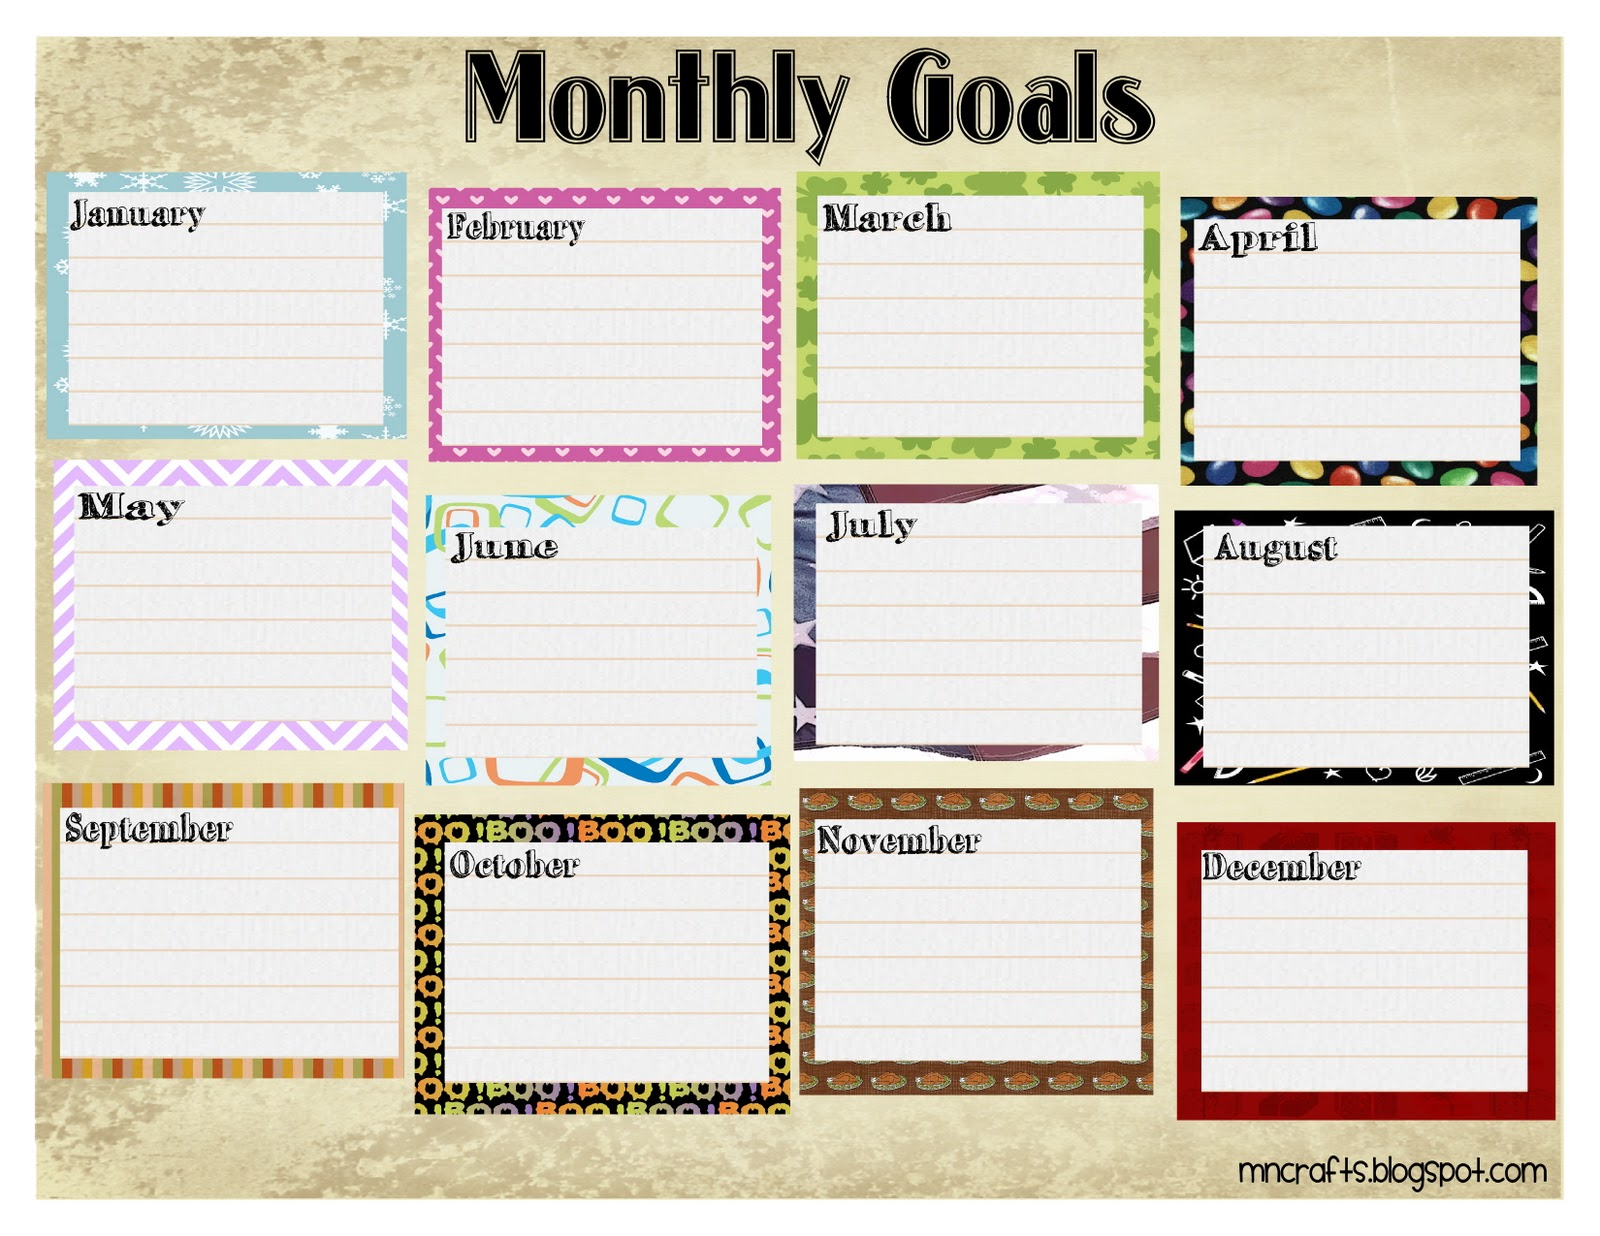 Critical image for monthly goals template